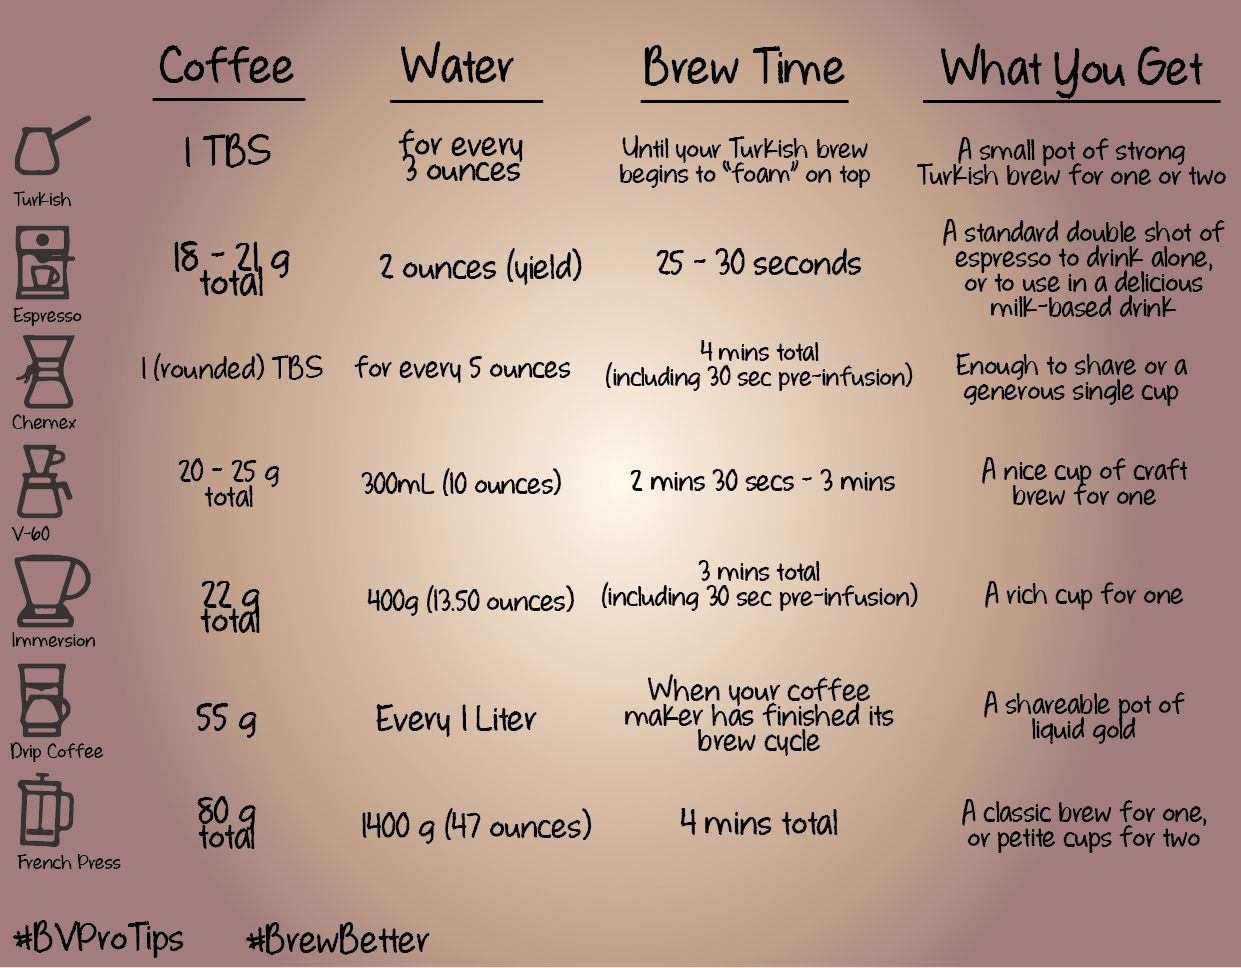 This ground coffeetowater ratio and estimated brew time